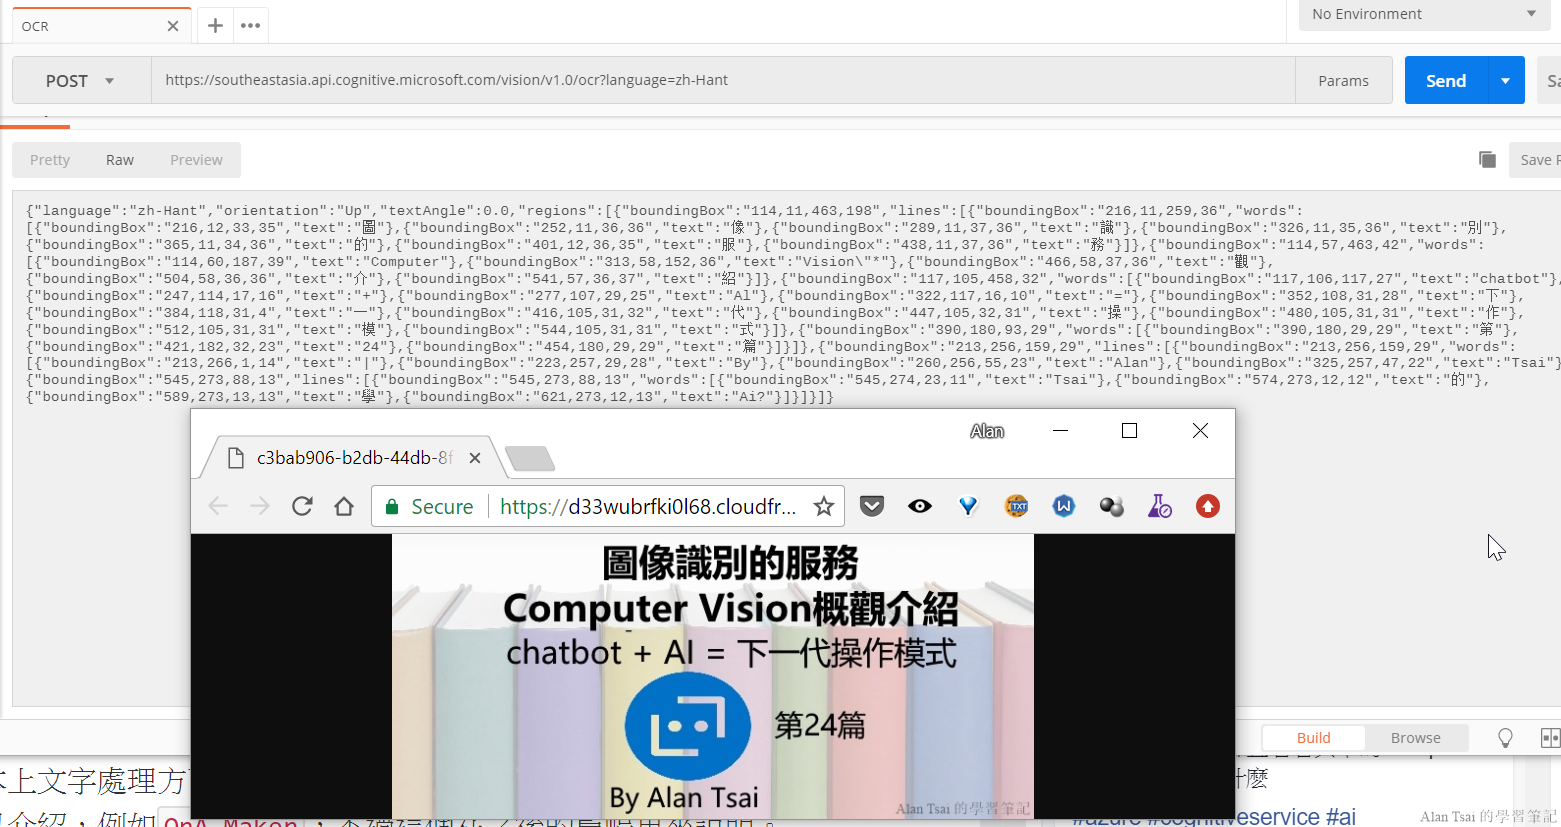 chrome_2018-08-04_20-25-22.png